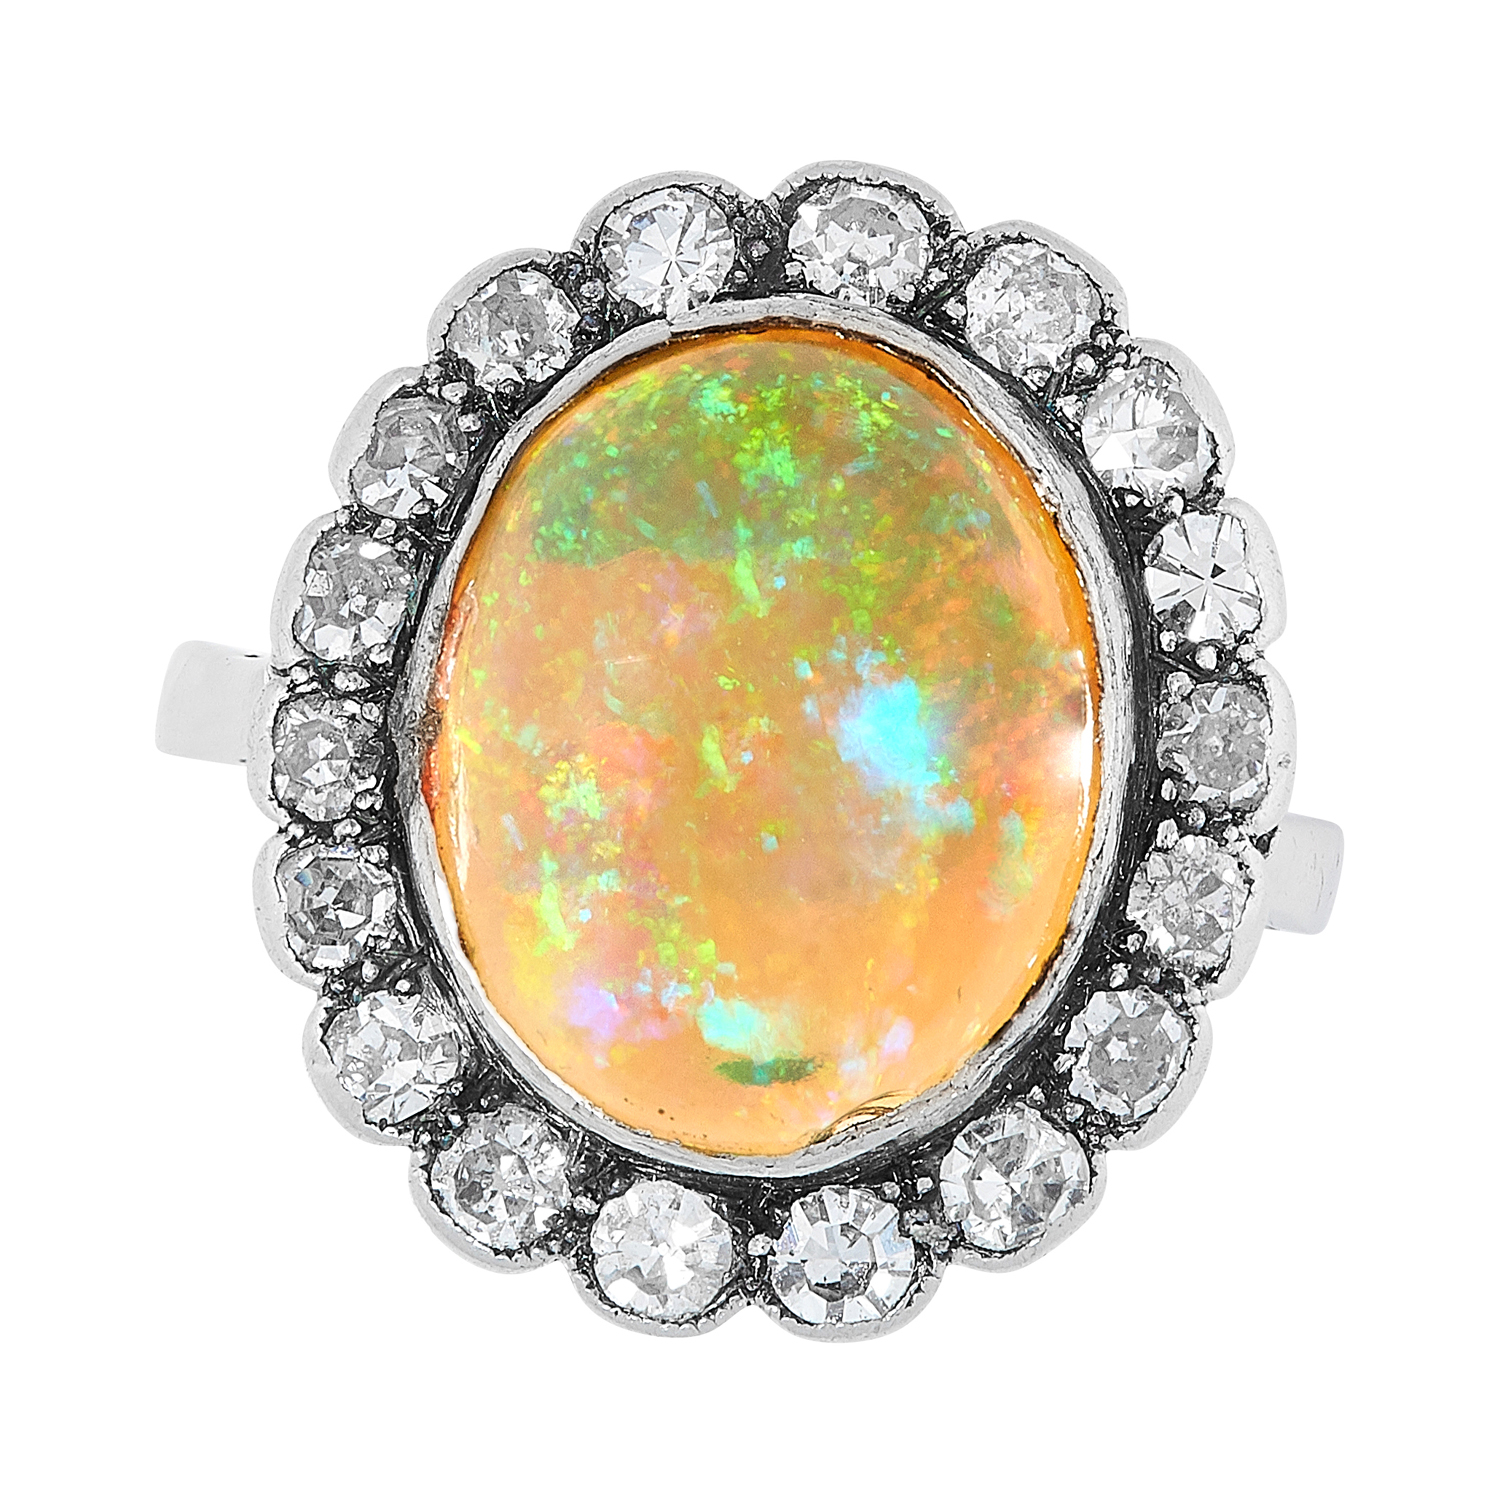 AN ANTIQUE ART DECO OPAL AND DIAMOND CLUSTER RING, EARLY 20TH CENTURY in platinum, set with an